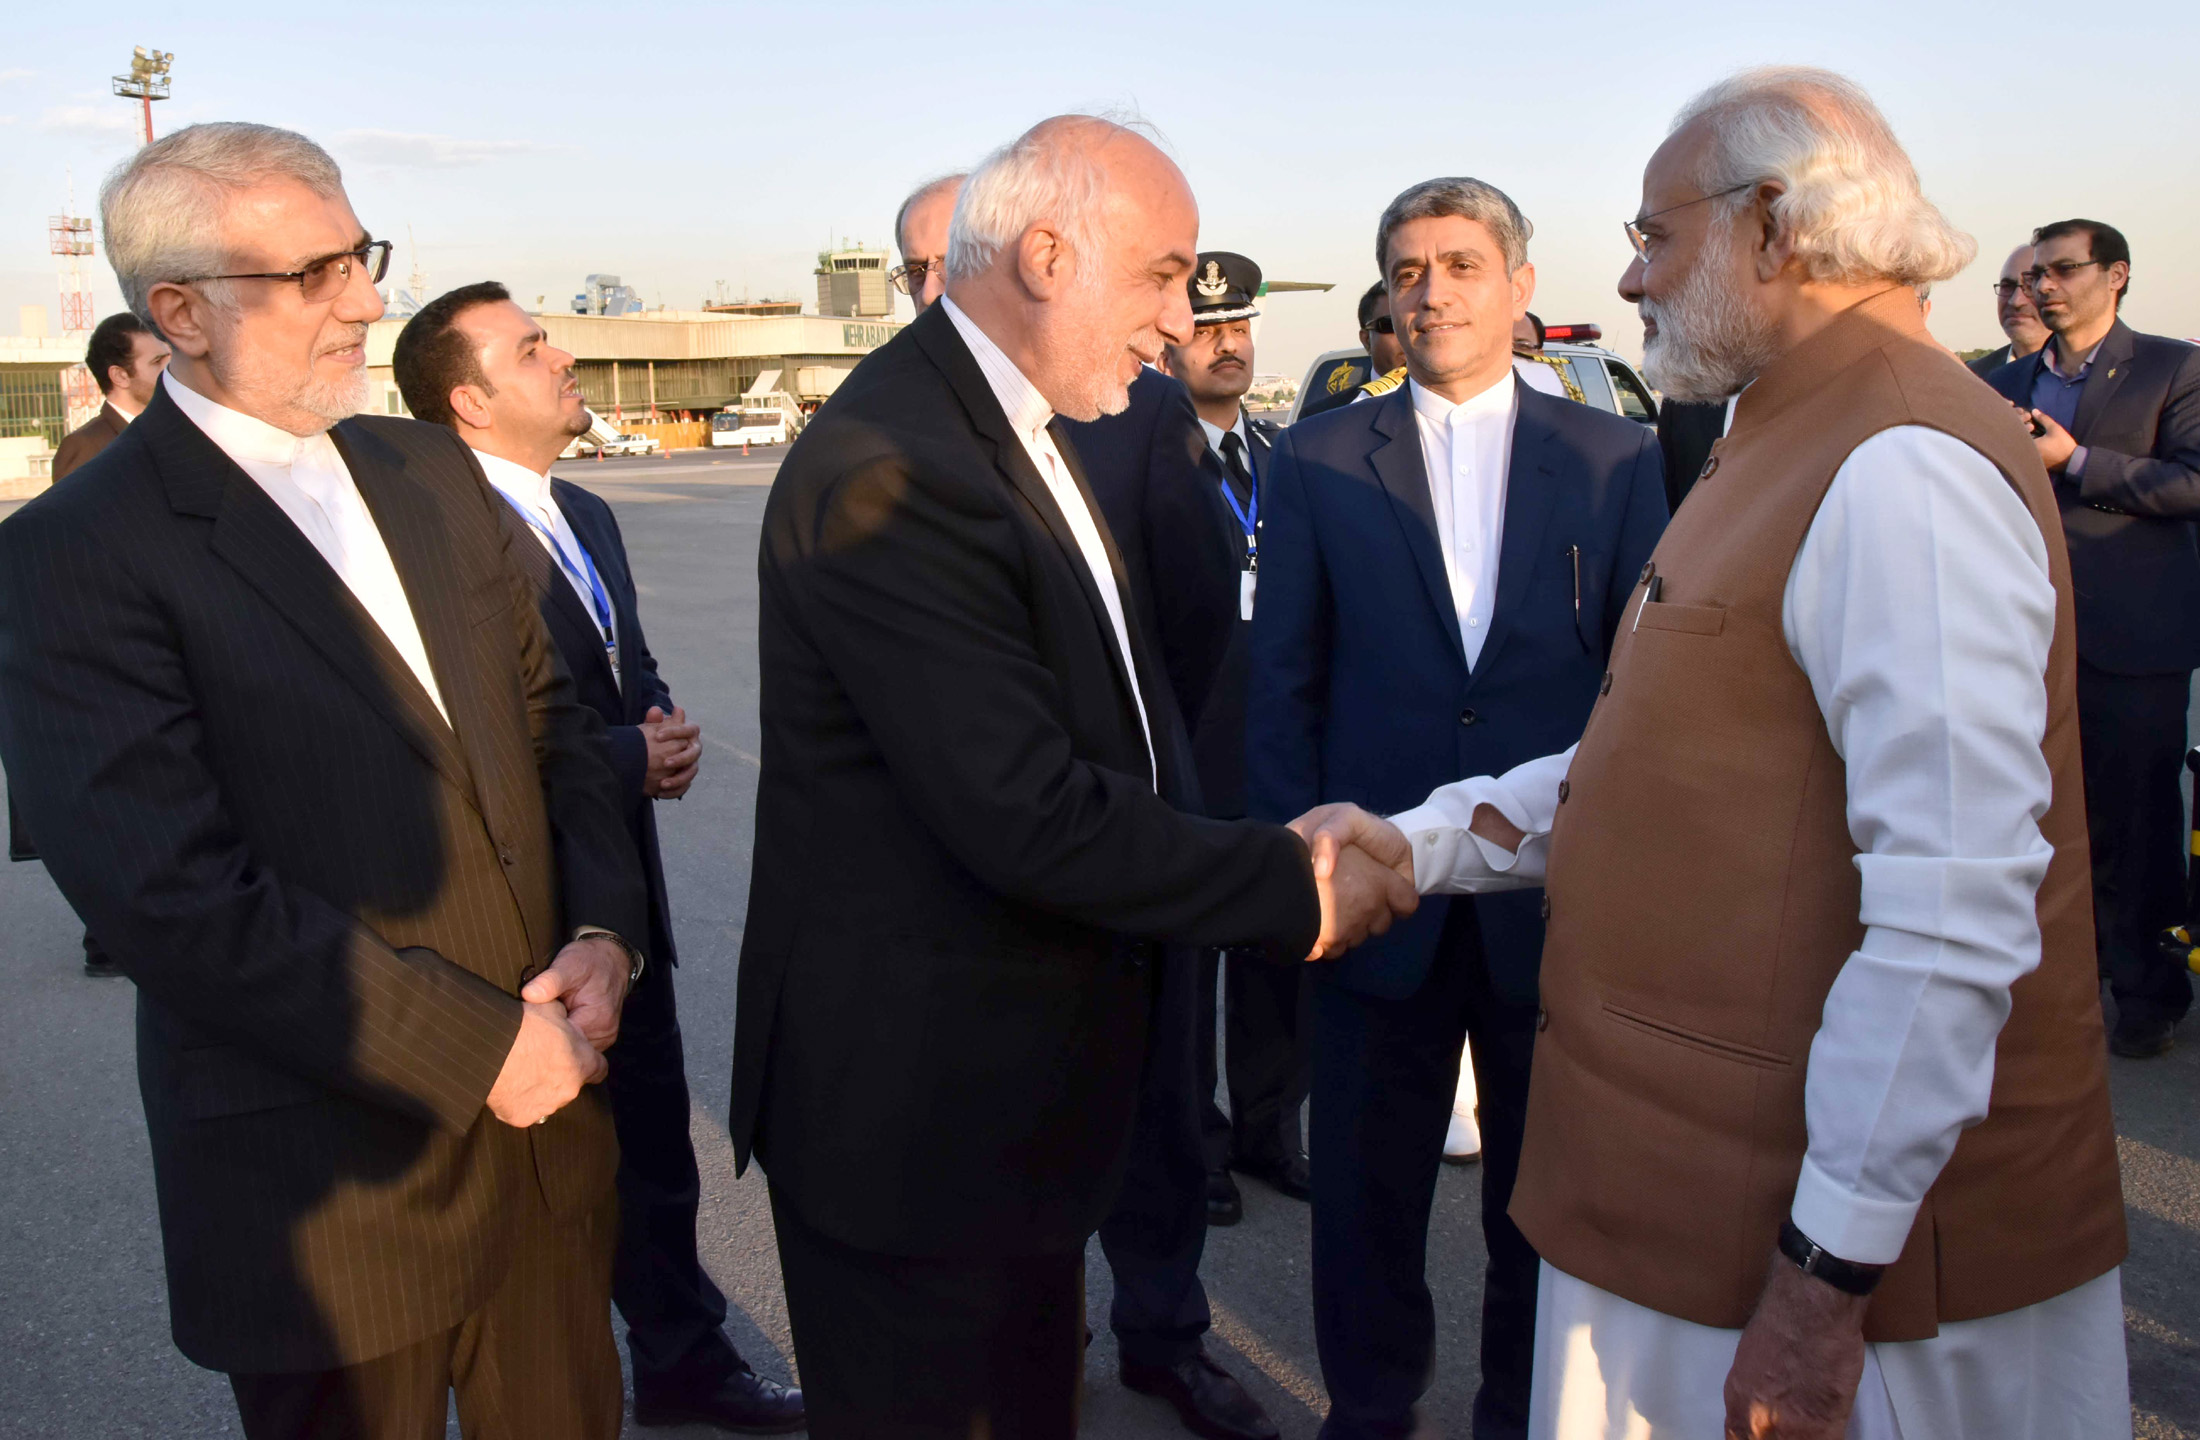 The Prime Minister, Shri Narendra Modi with the President of Iran, Mr. Hassan Rouhani and the President of Afghanistan, Dr. Mohammad Ashraf Ghani, during the Trilateral meeting, in Tehran on May 23, 2016.